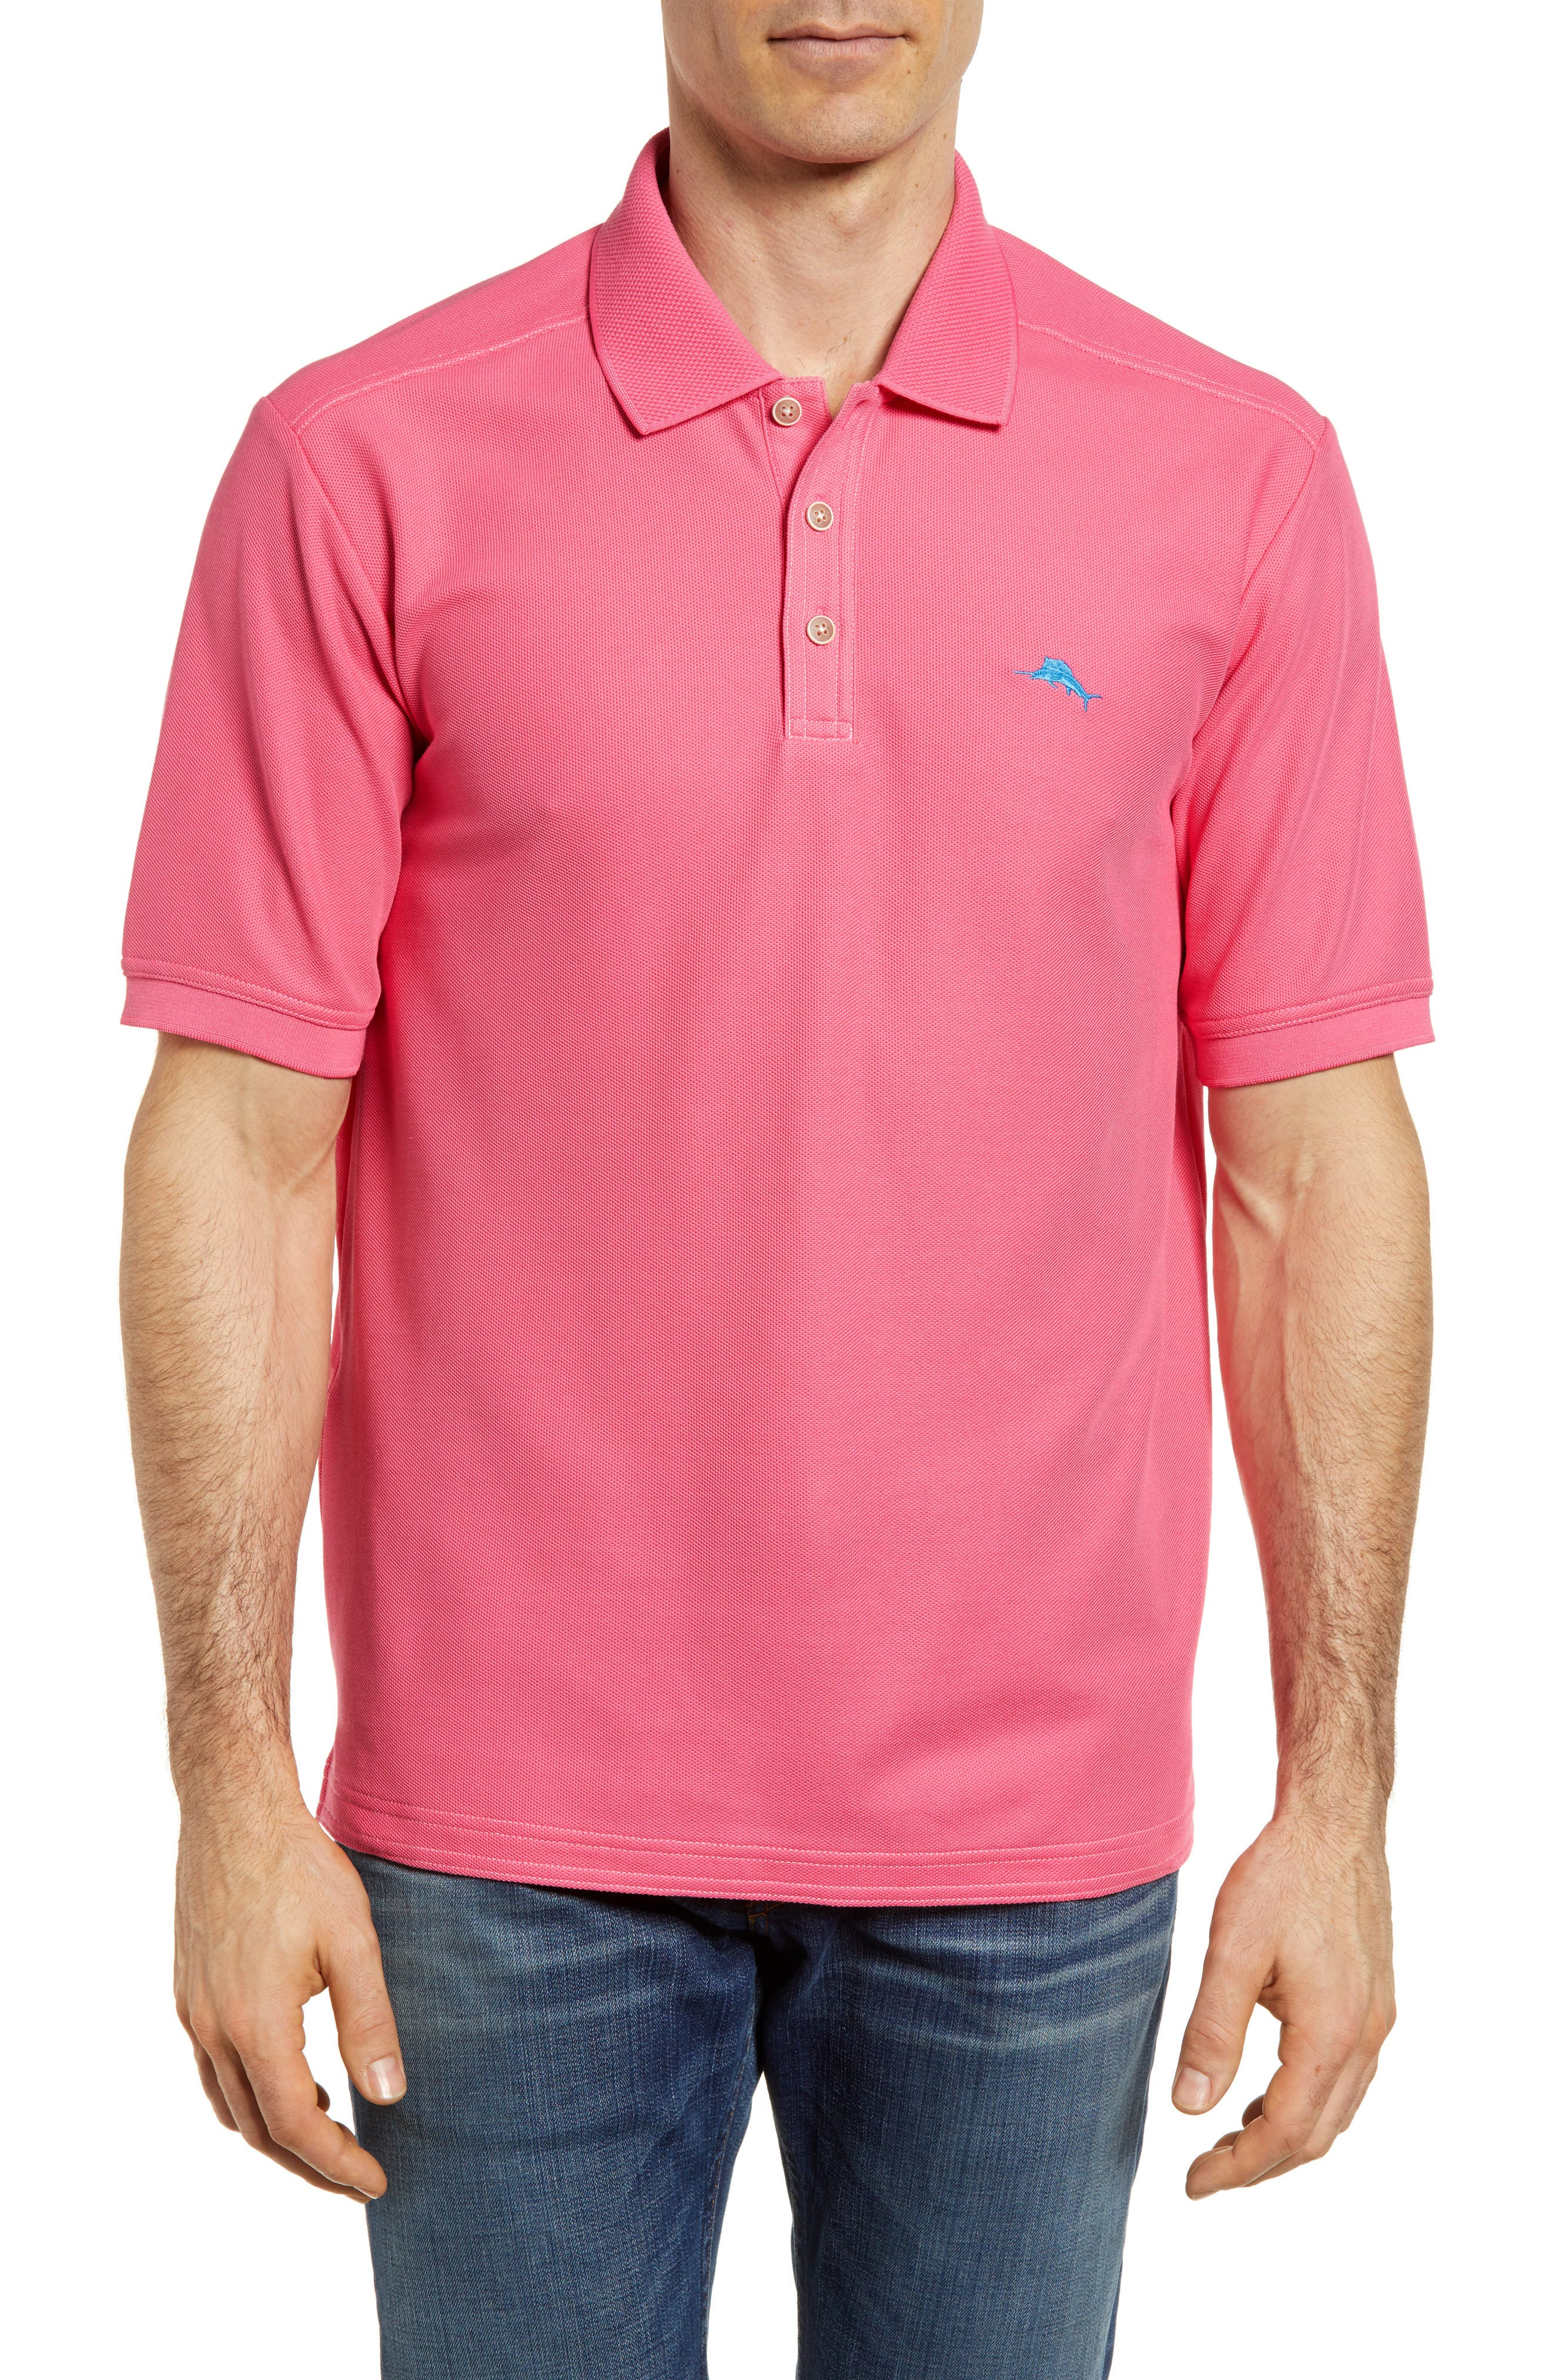 Alternate Image 1 Selected - Tommy Bahama 'The Emfielder' Original Fit Piqué Polo